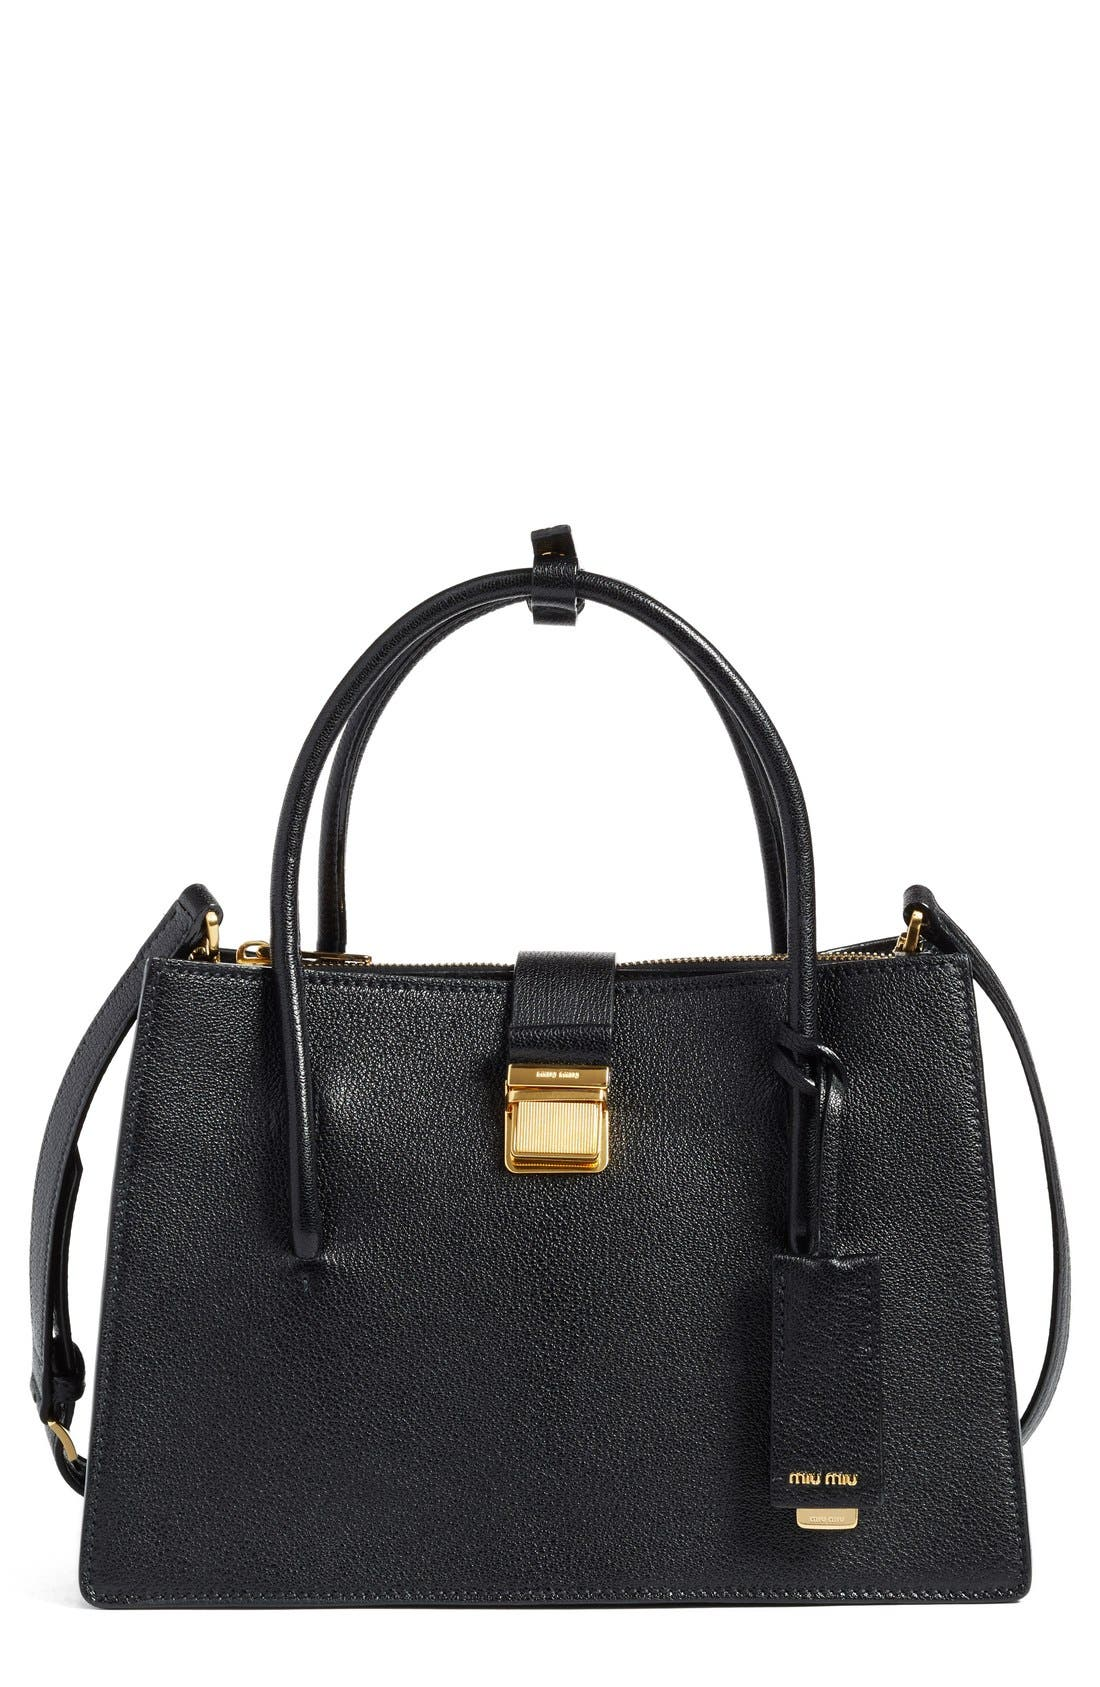 Miu Miu 'Small Madras' Goatskin Leather Satchel